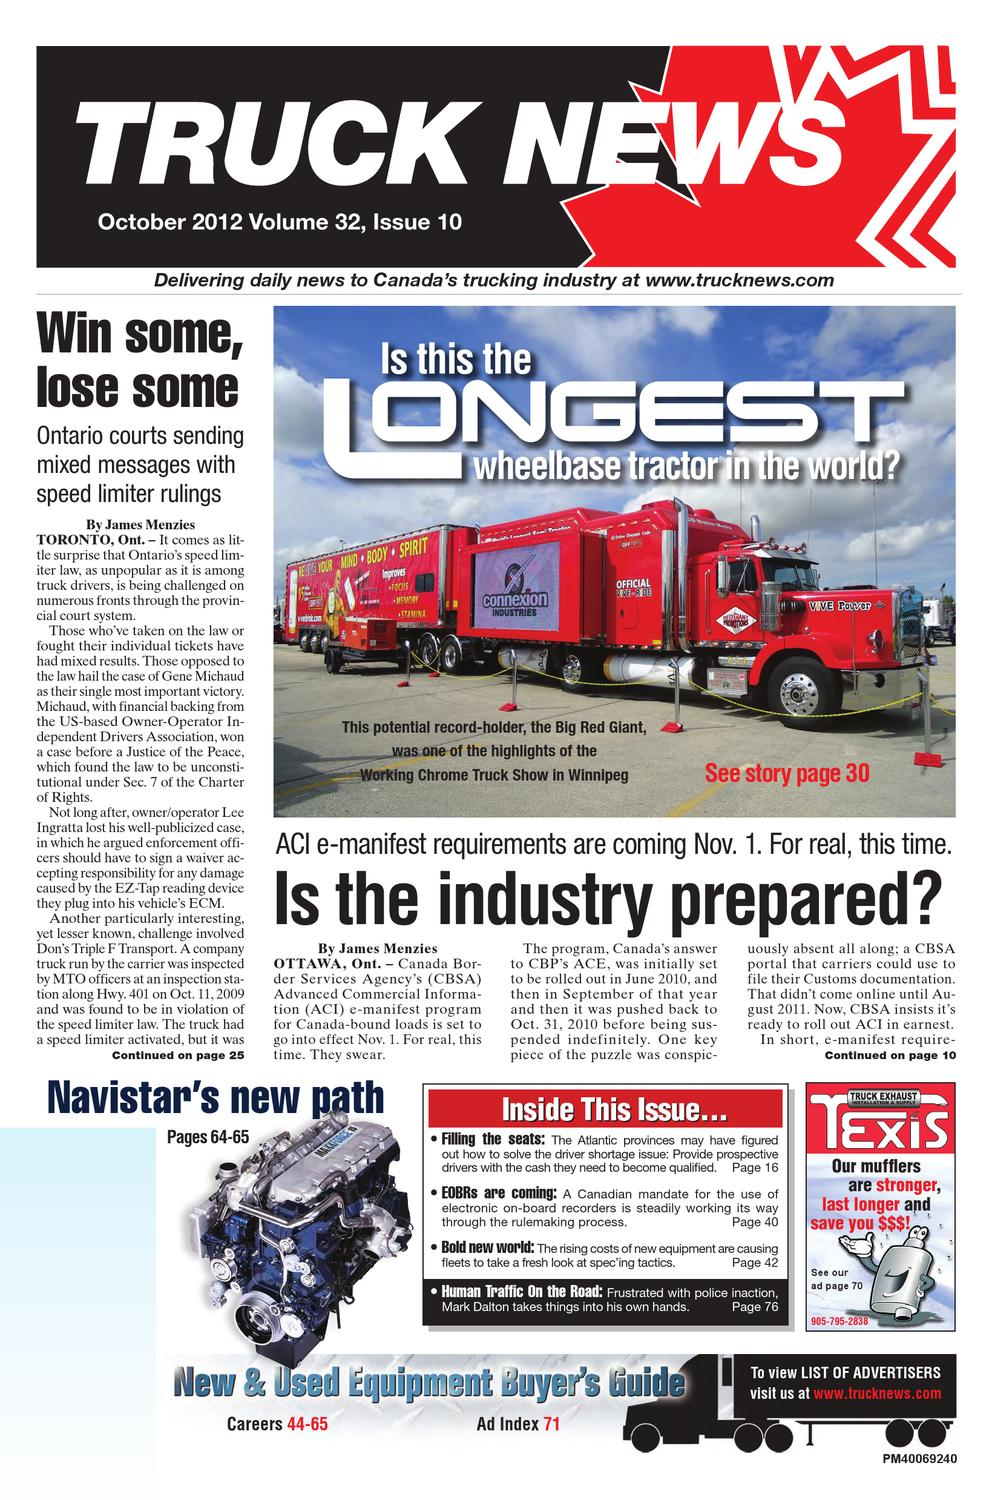 Truck News October 2012 By Annex Newcom Lp Issuu Peterbuilt Paccar Ecm Motor Wiring Diagram For With